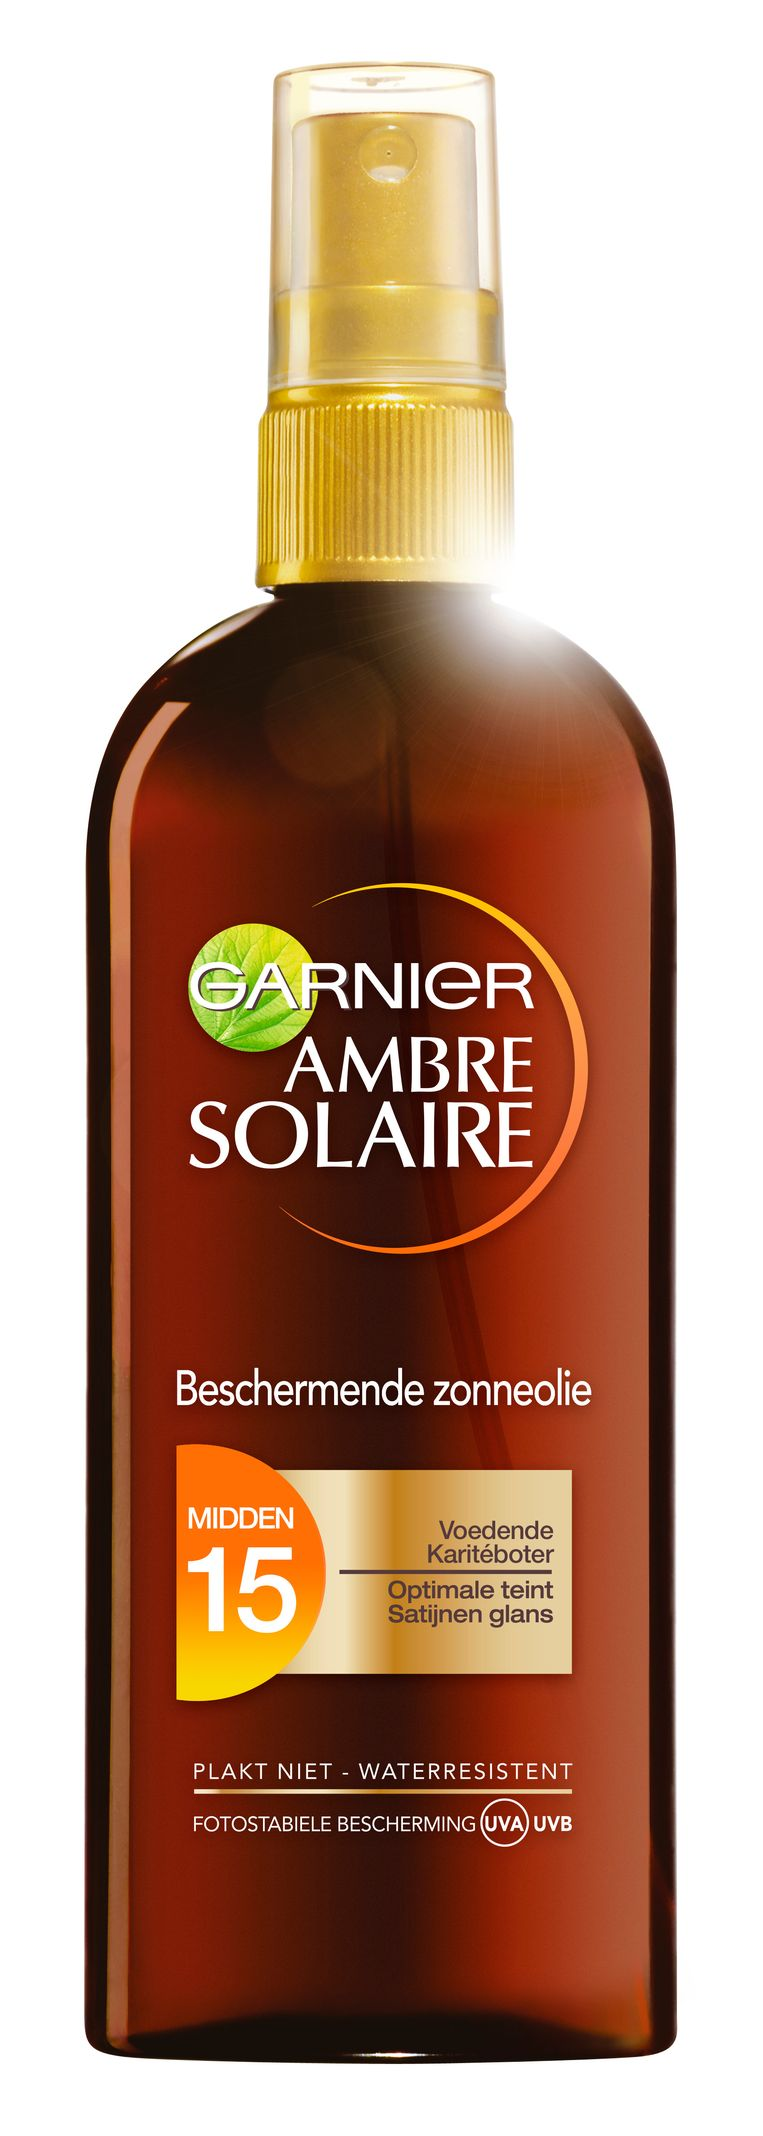 Olie + Low: Garnier Ambre Solaire Zonneolie SPF15, € 17,50 Beeld null